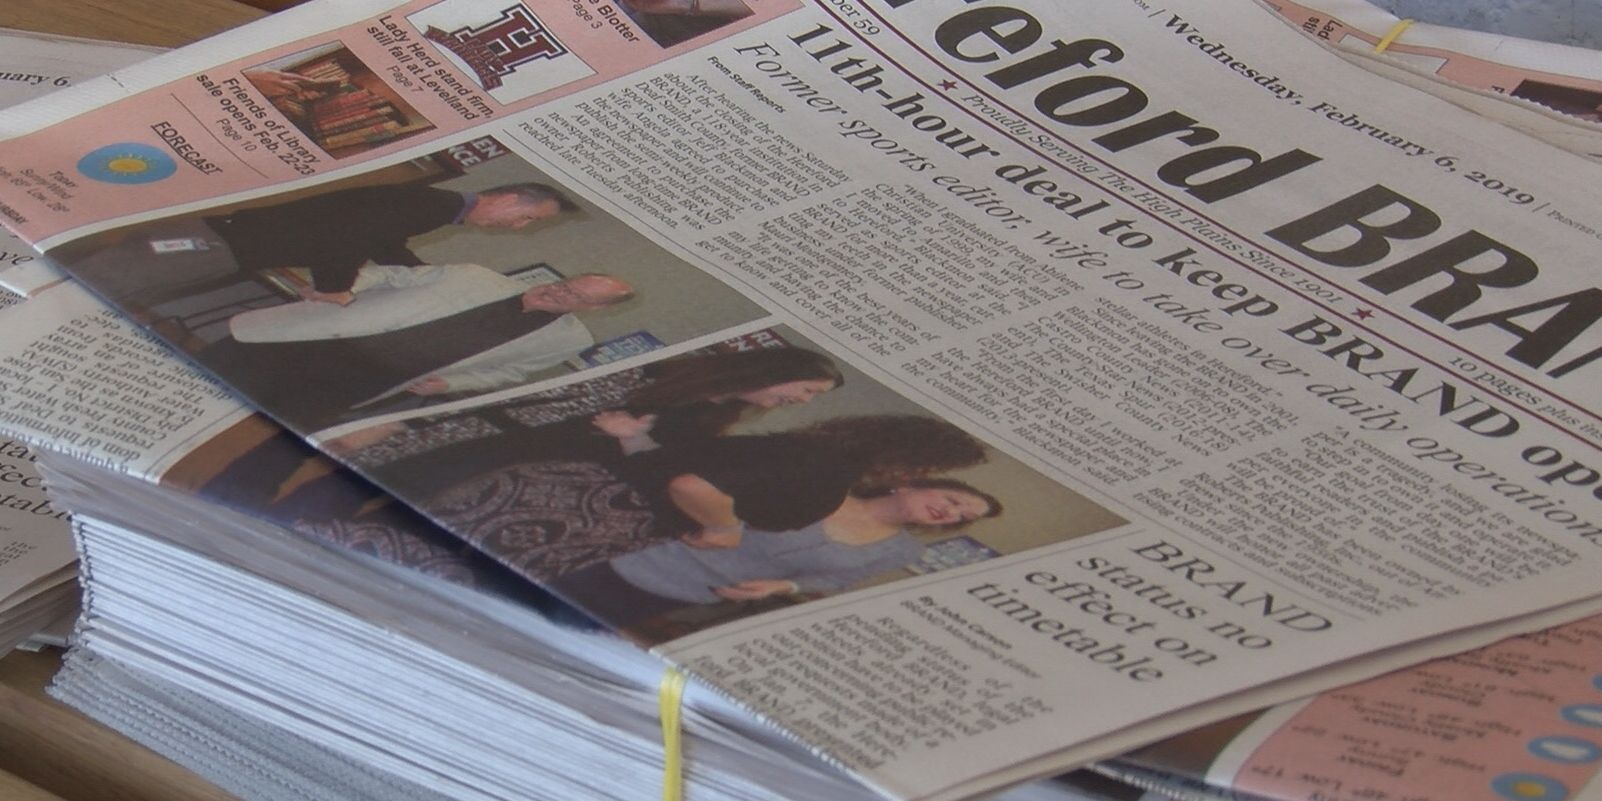 Hereford newspaper gets second chance after former employee purchases the publication